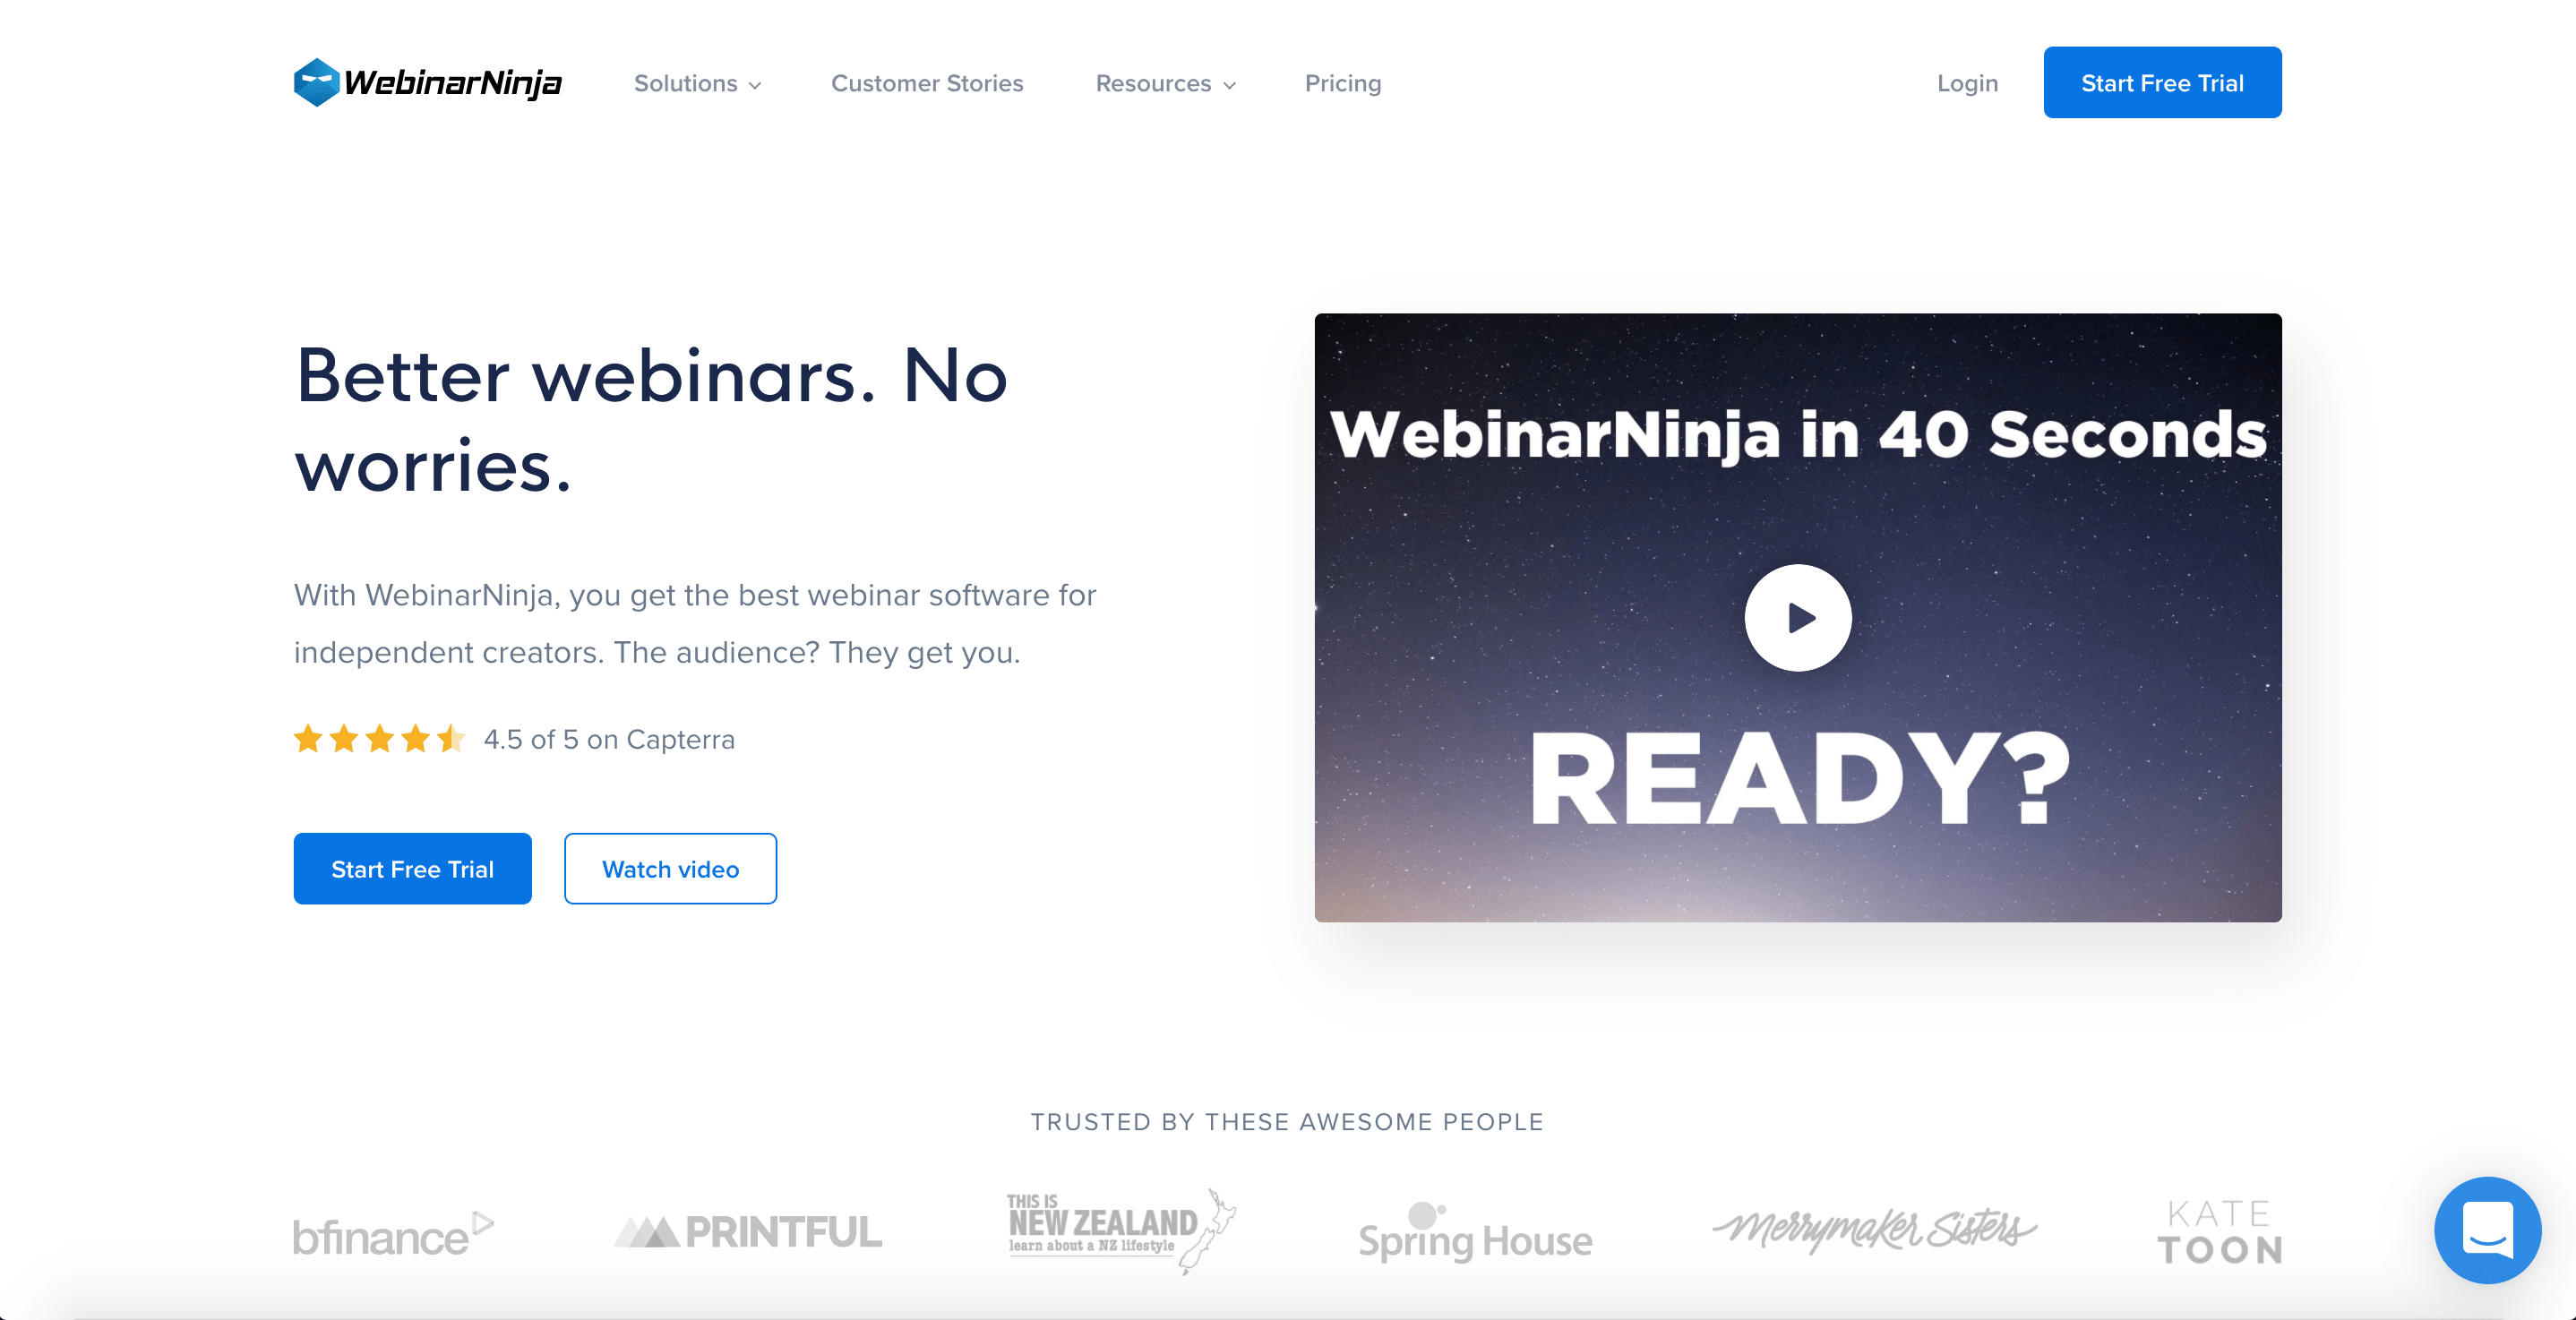 Homepage for WebinarNinja